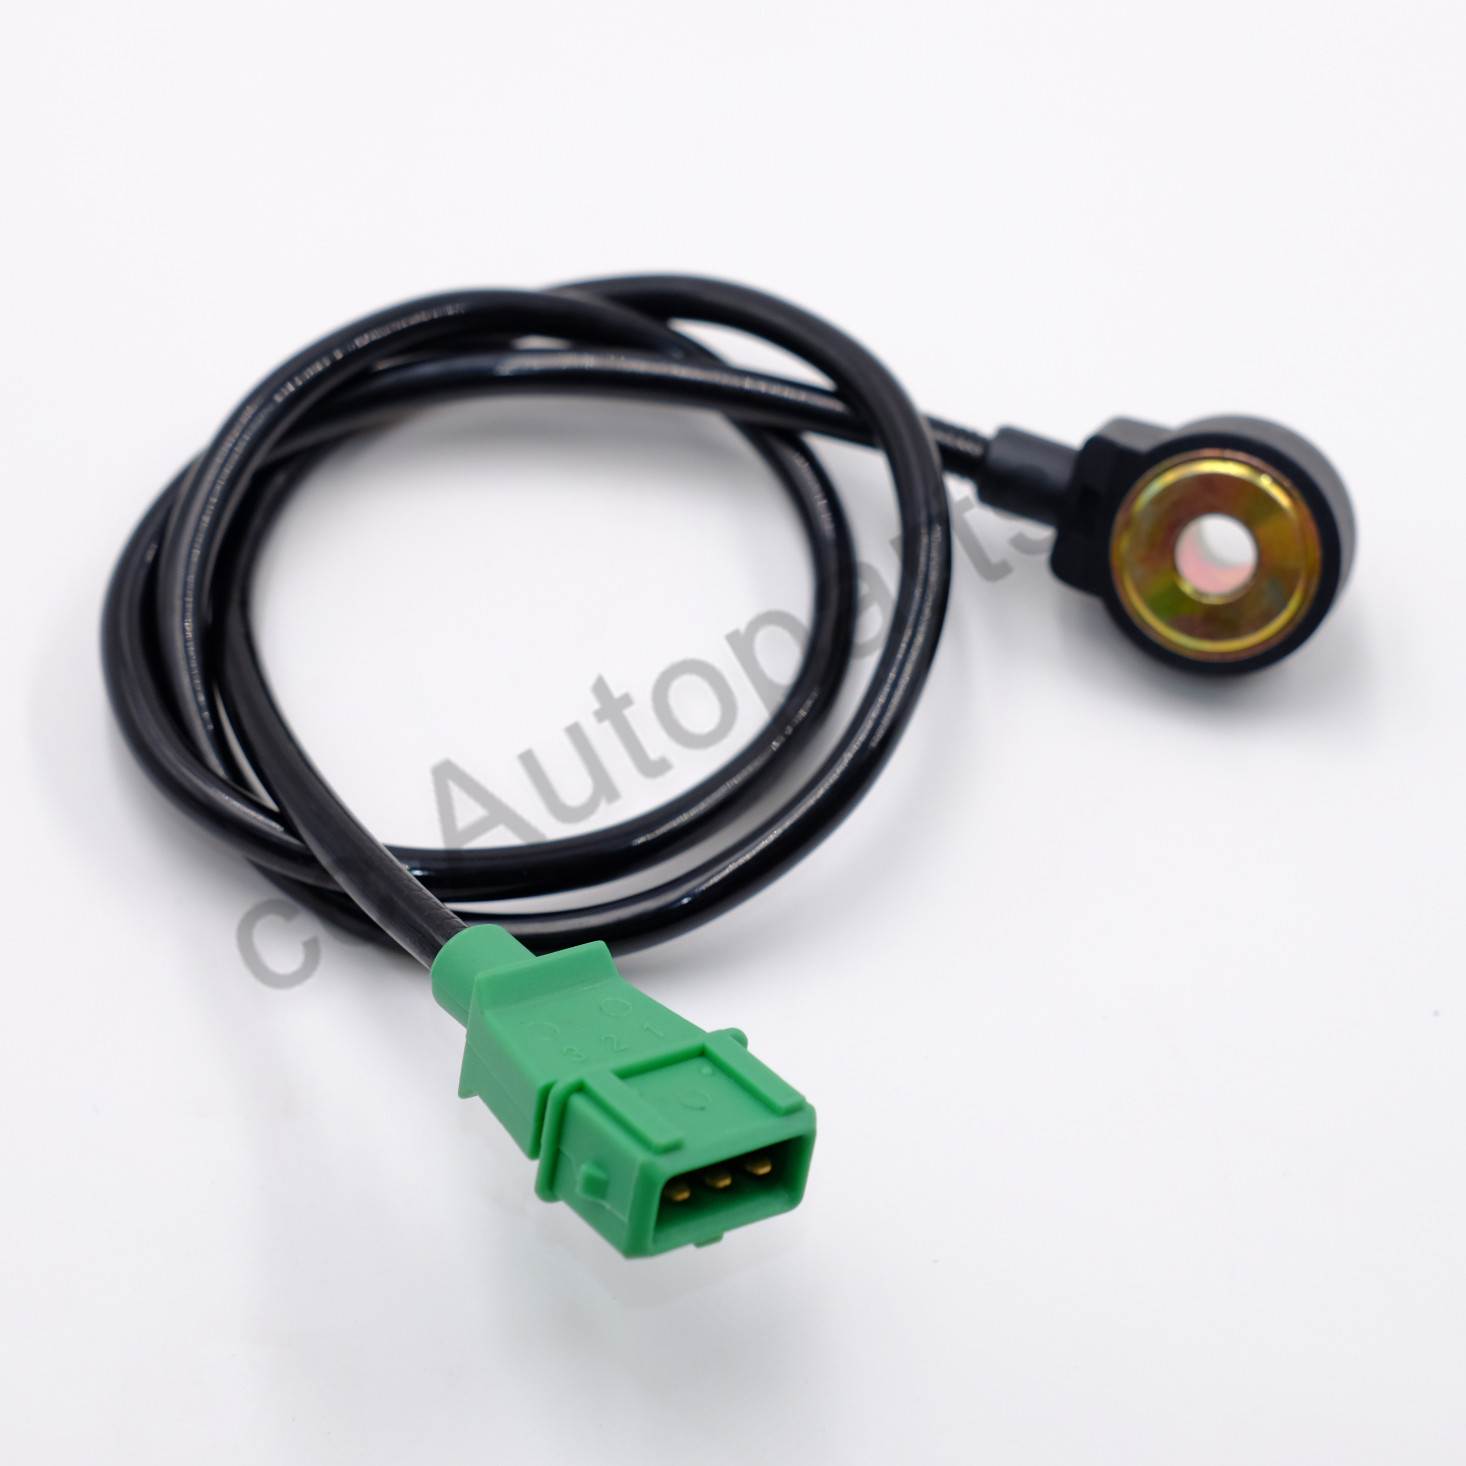 Knock Sensor for VW Golf Jetta MK2 Corrado G60 Passat Scirocco OE 0261231038 054 905 377 A 054 905 377 H in Detonation Sensor from Automobiles Motorcycles